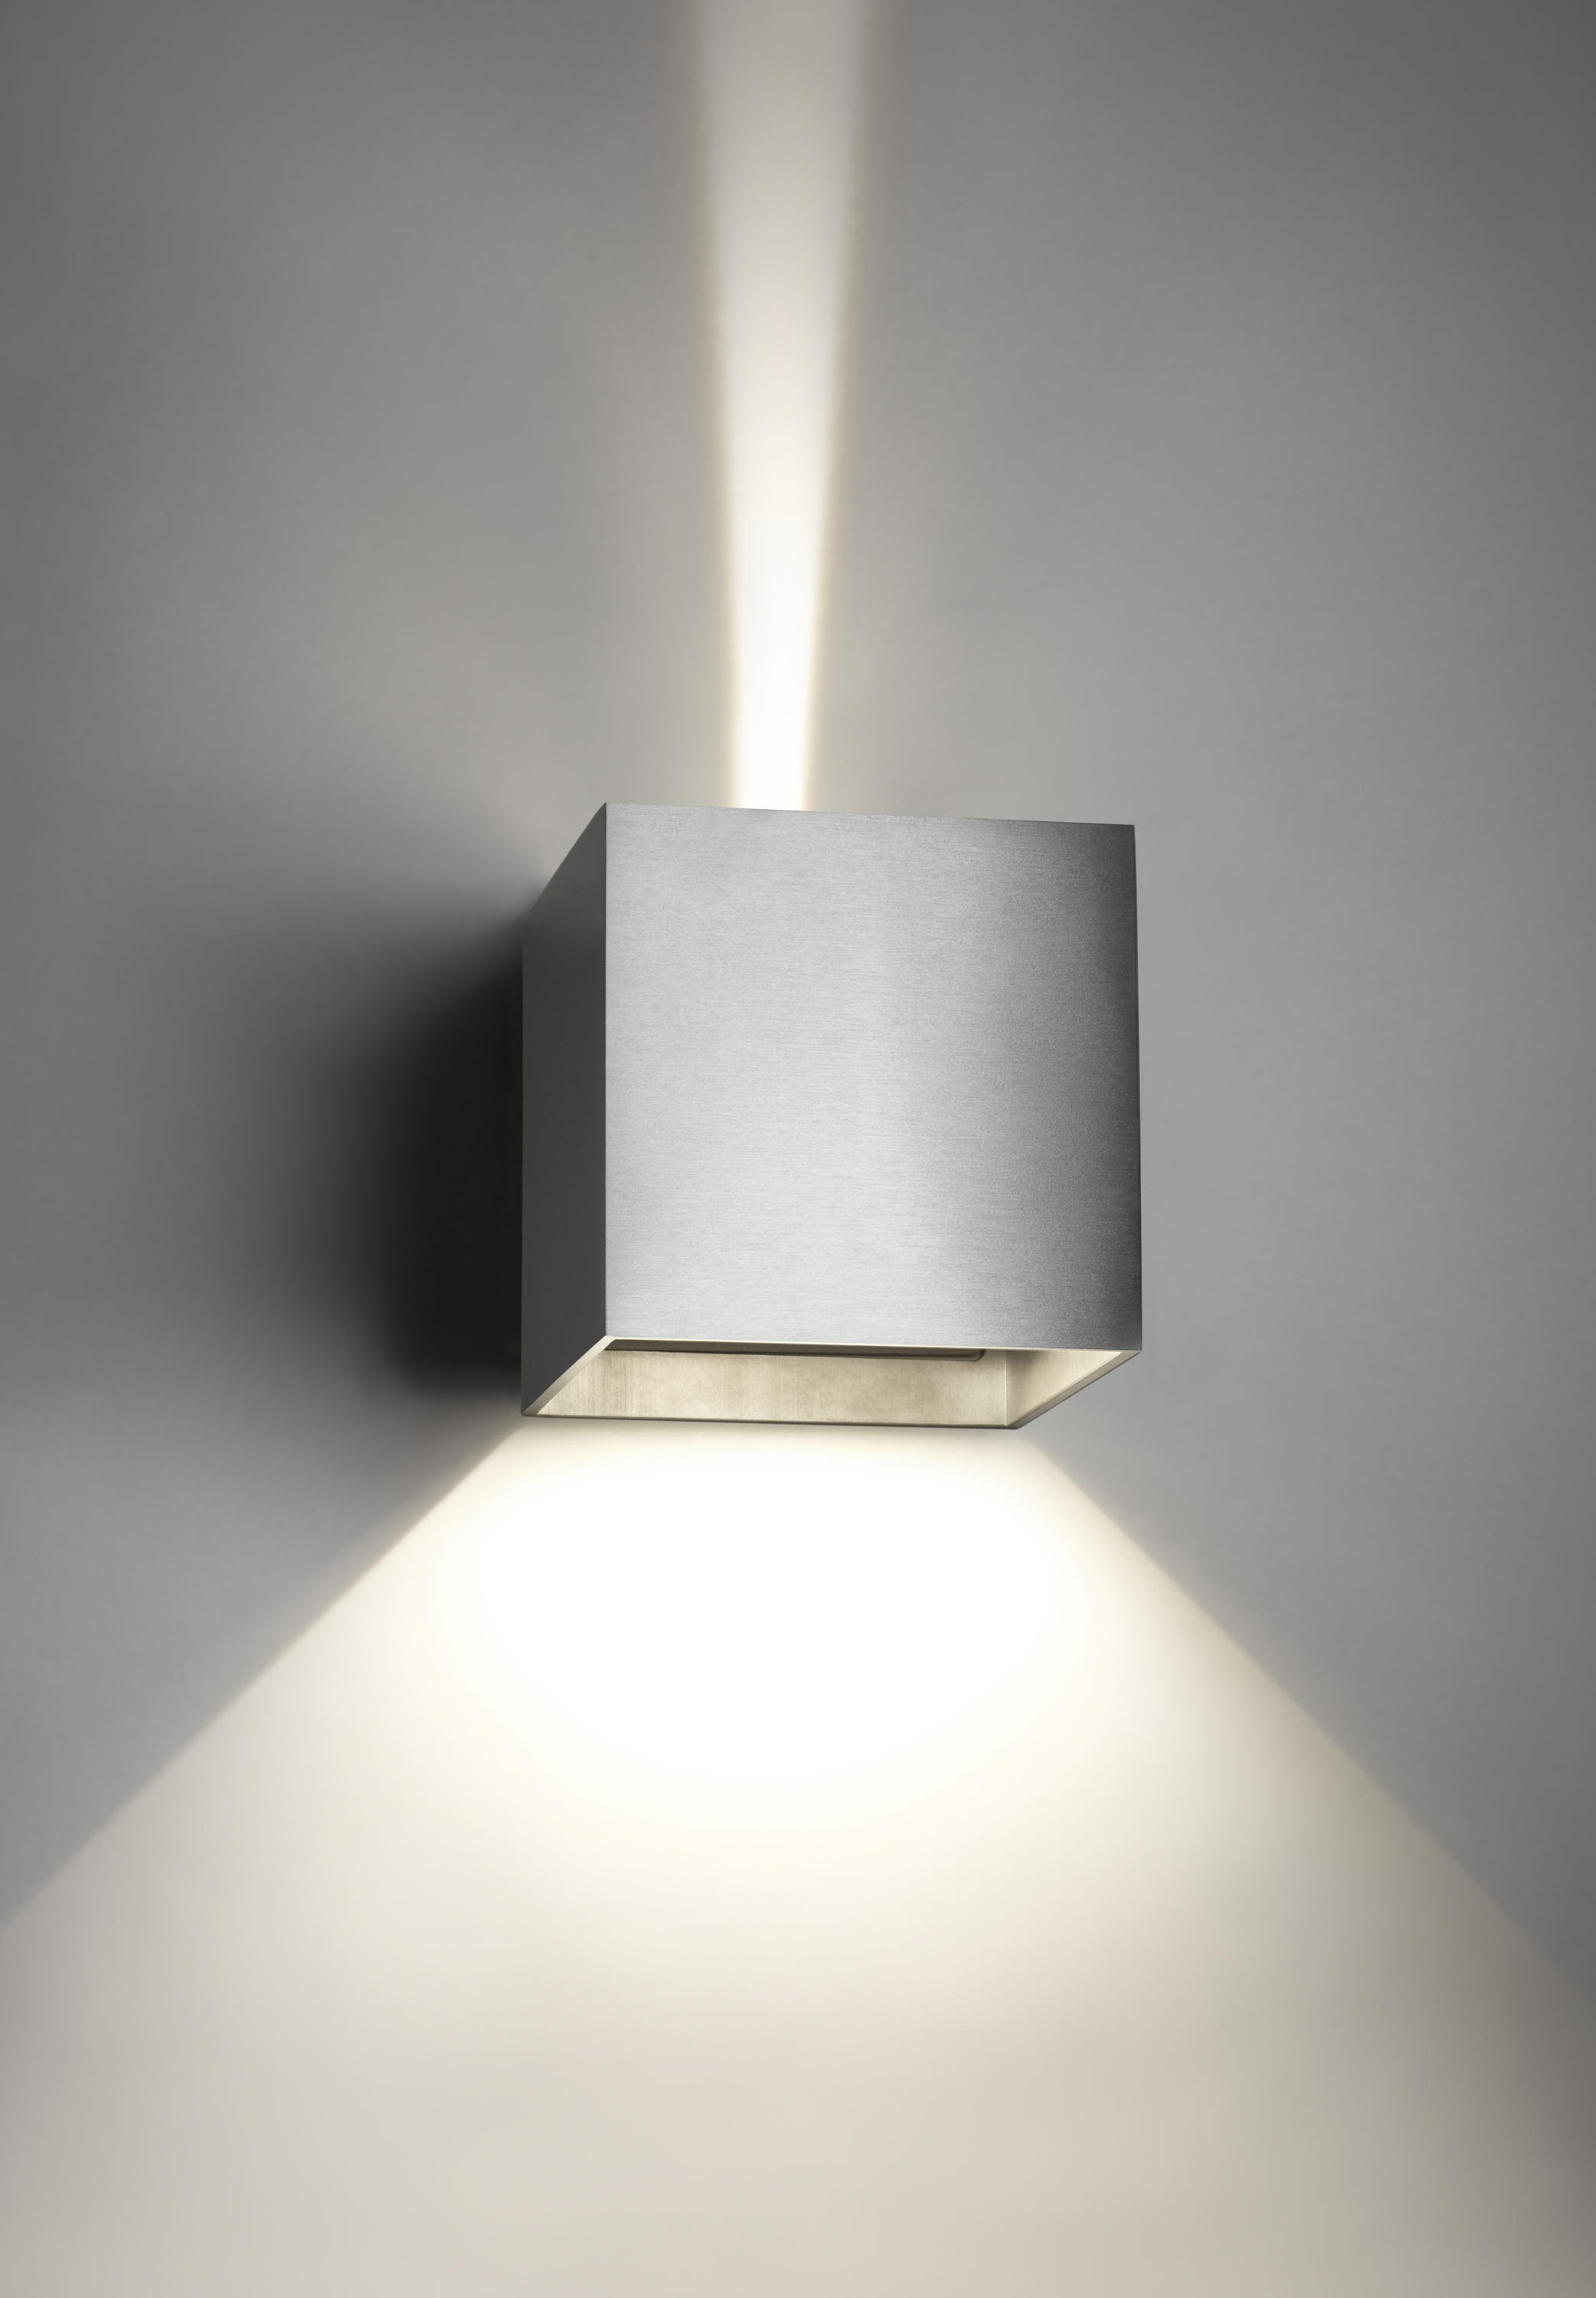 Box Wall Lights From Light Point Architonic